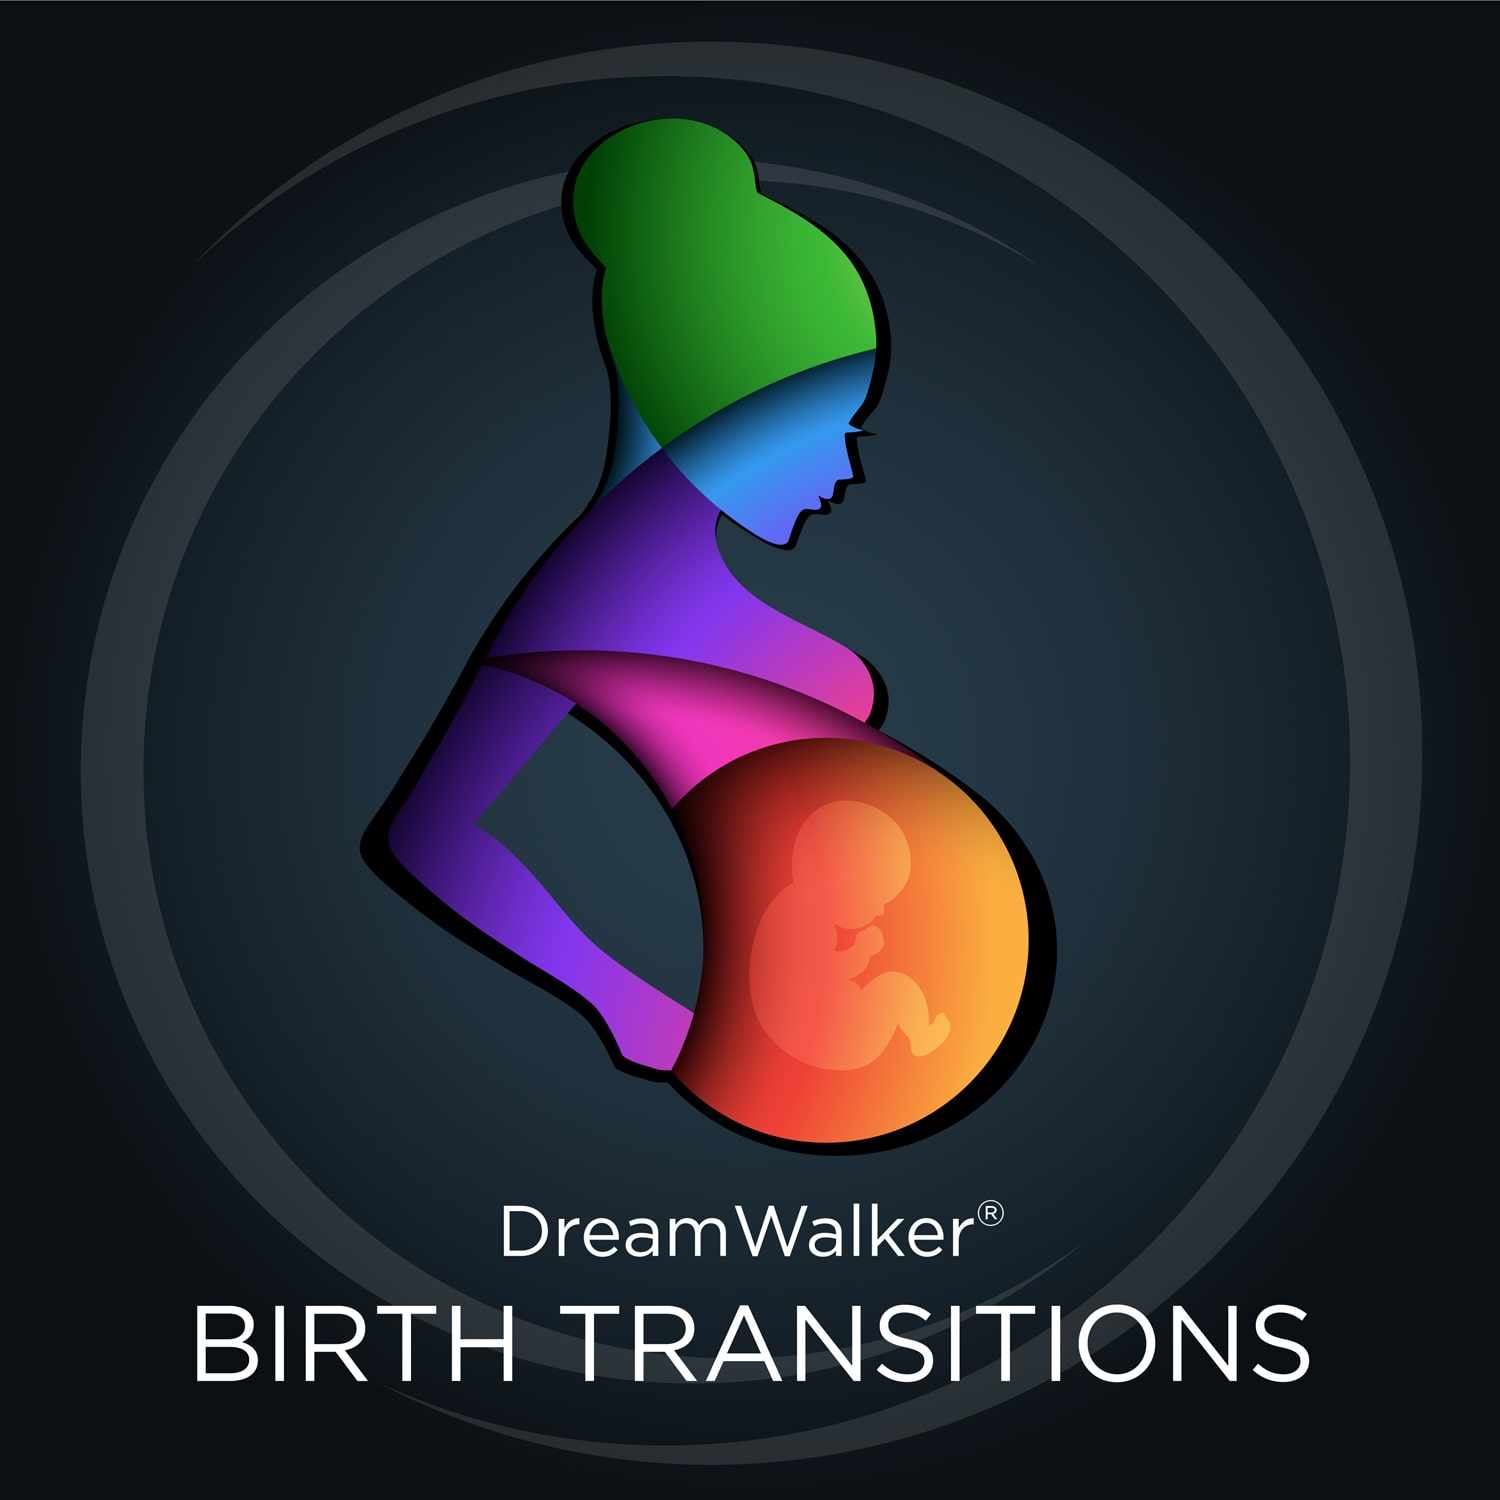 DreamWalker Birth Transitions